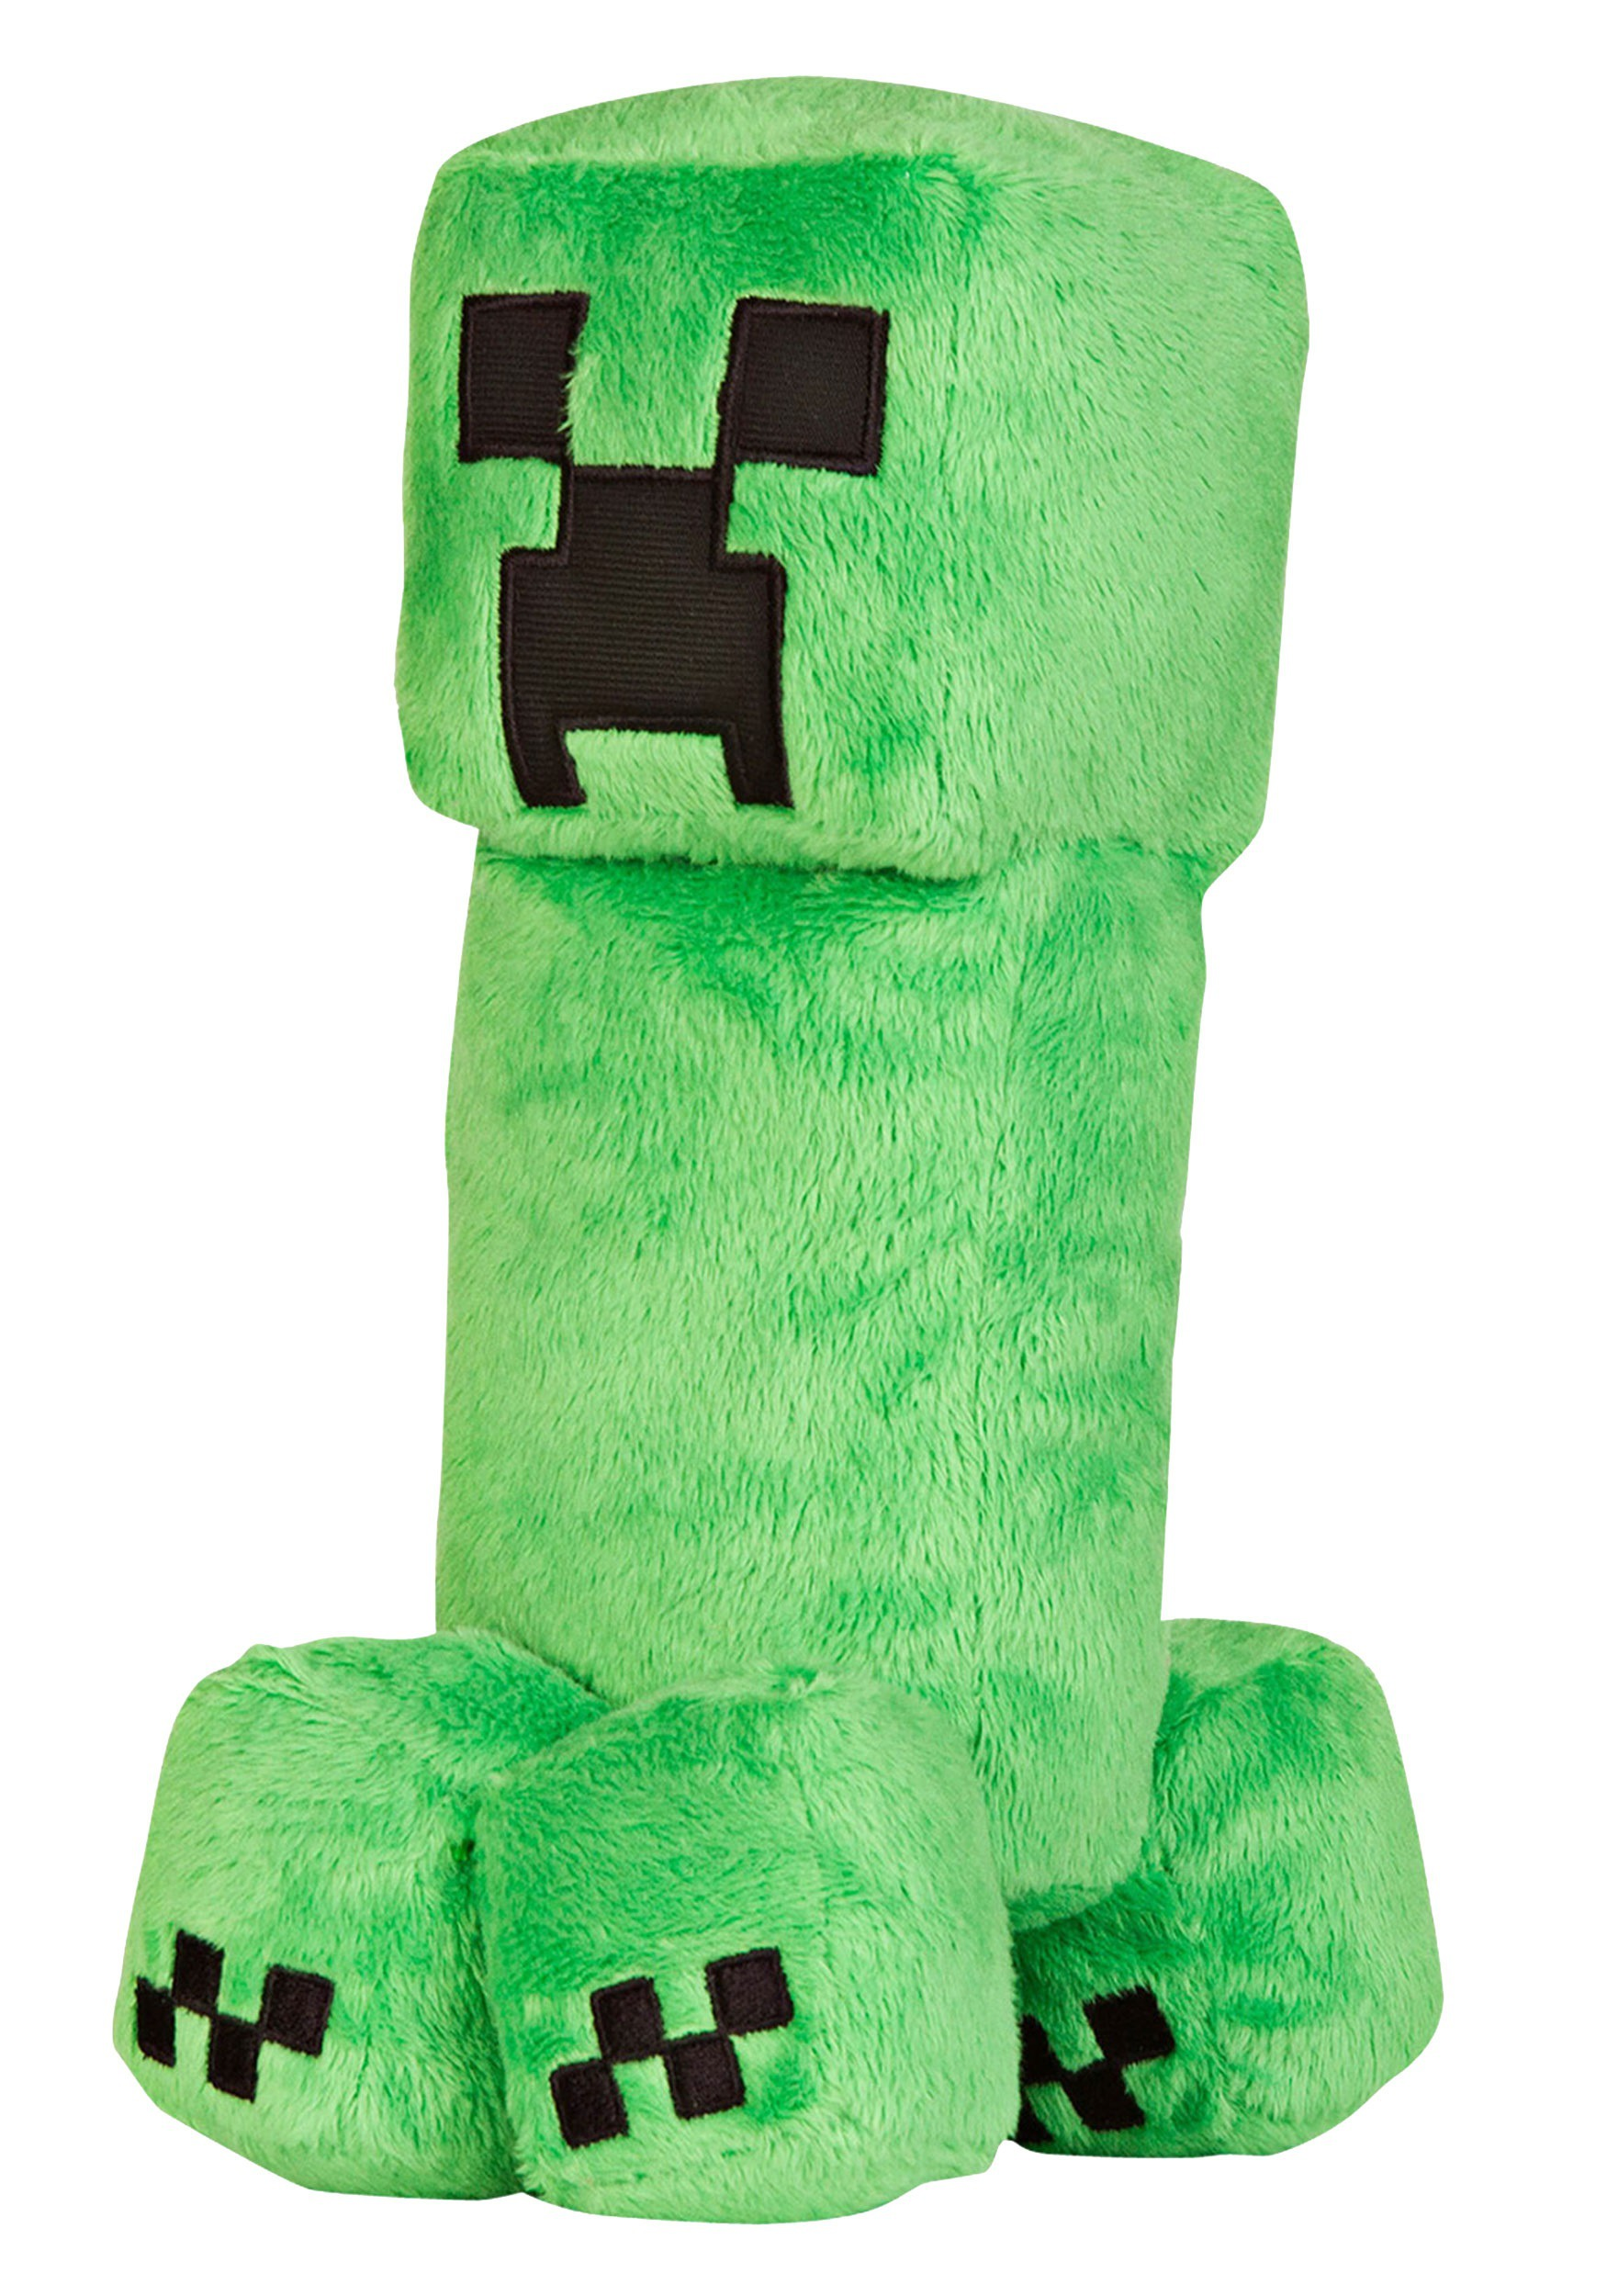 Minecraft Creeper Stuffed Figure SA20065146